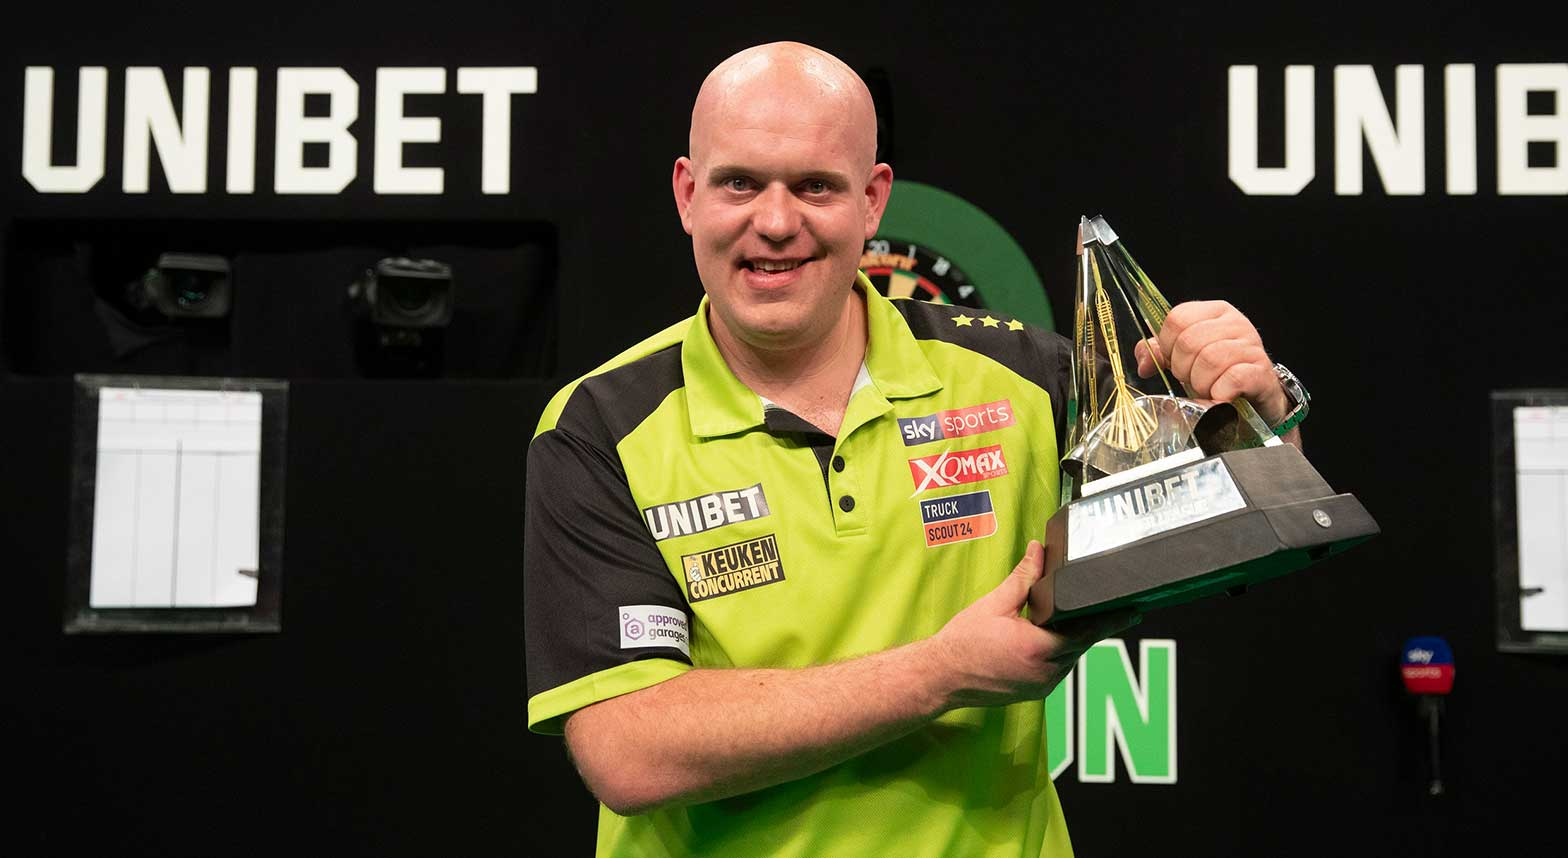 premier-league-darts-vangerwen.jpg